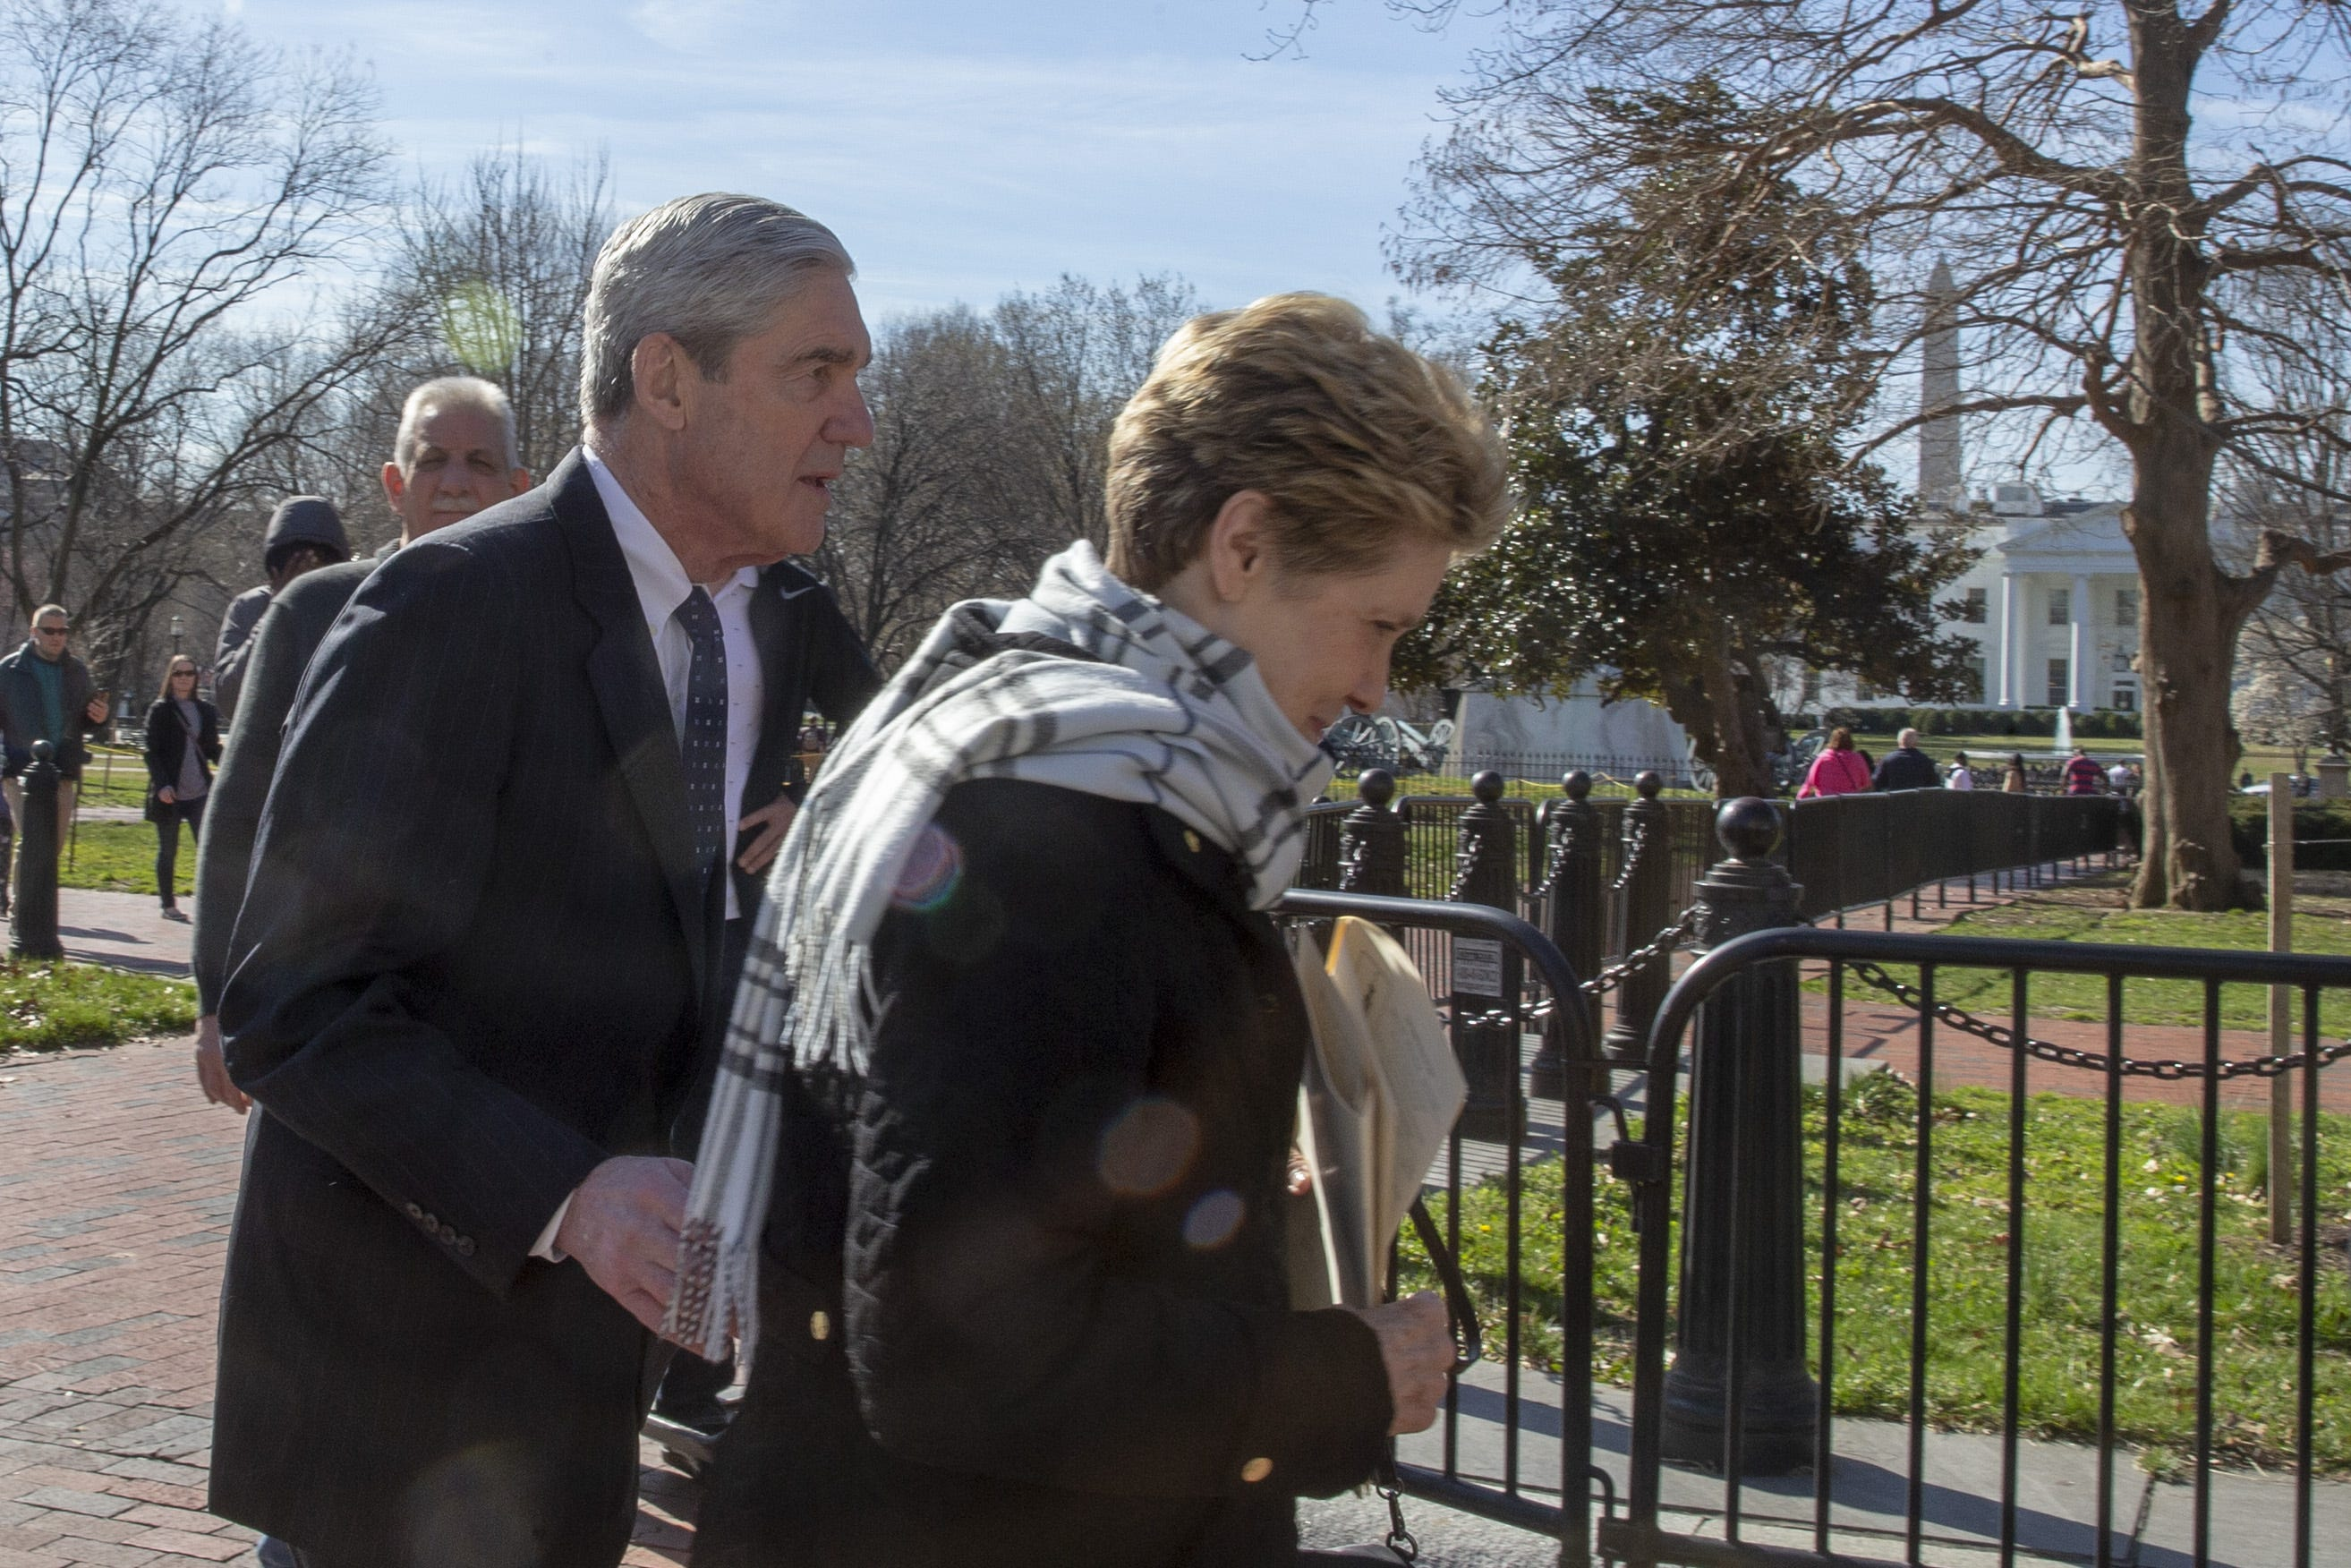 Mueller report mystifies, but not because it cannot be true